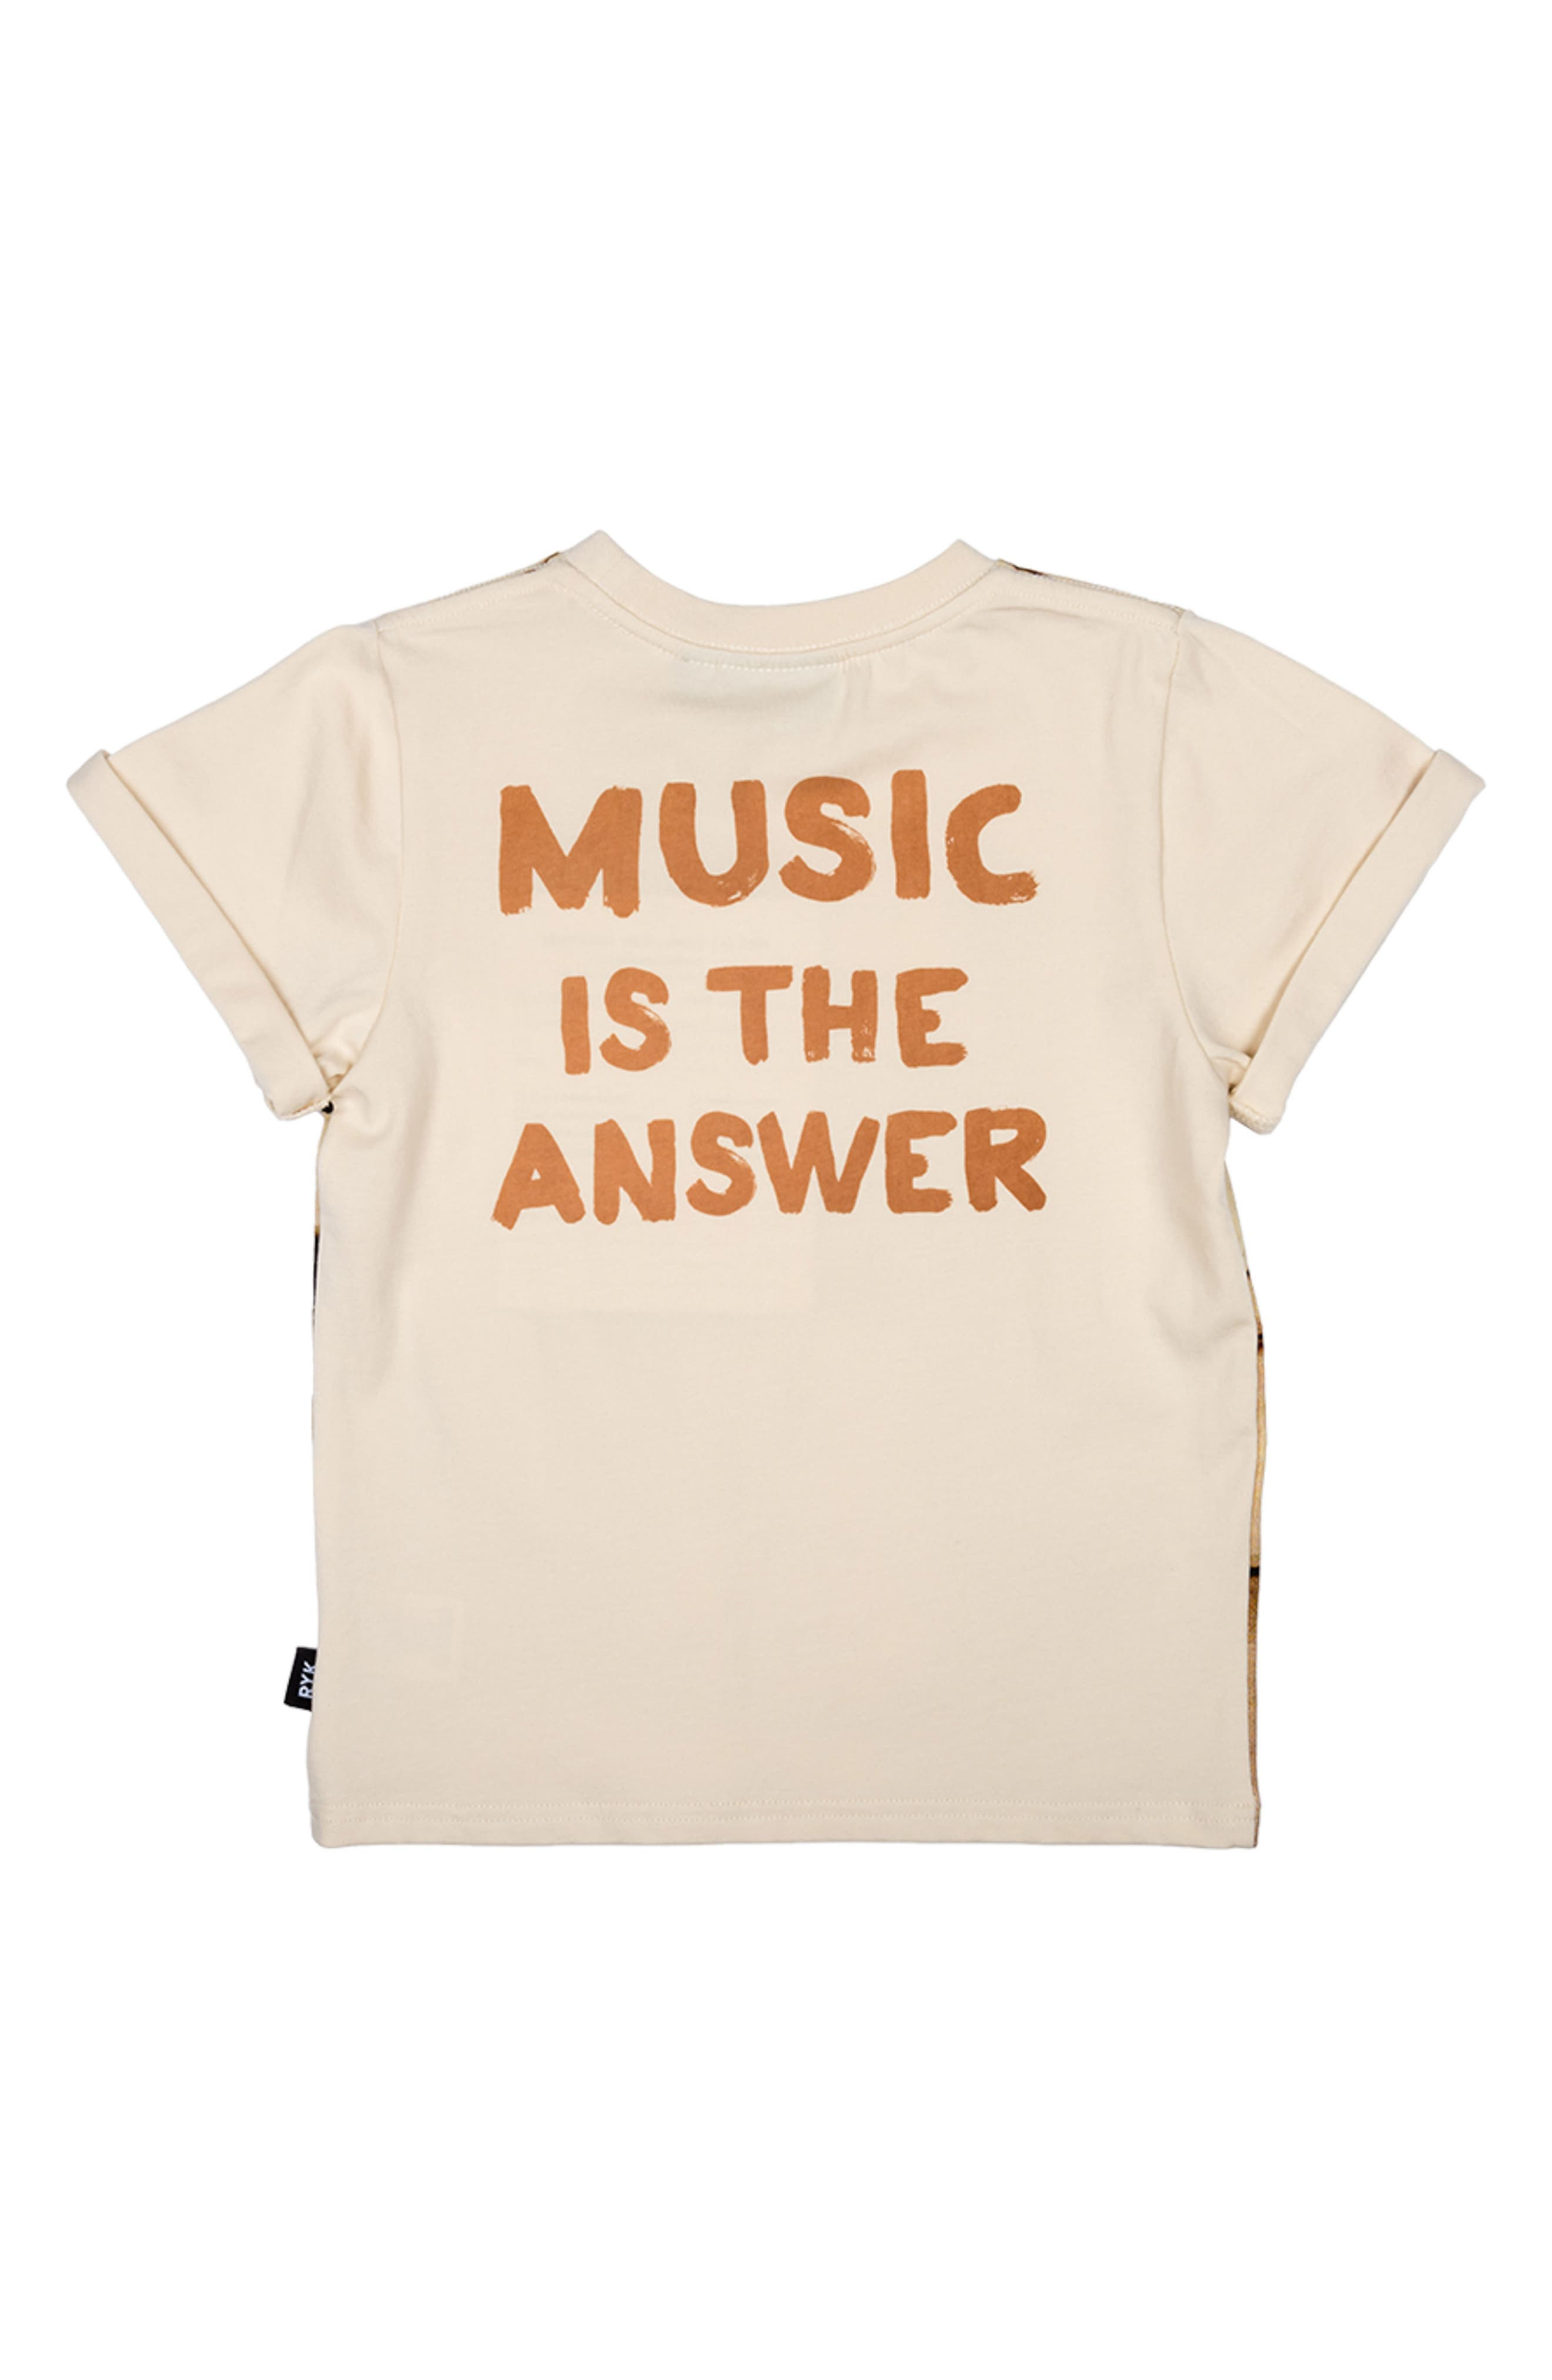 Music Is the Answer Graphic T-Shirt,                             Alternate thumbnail 2, color,                             250